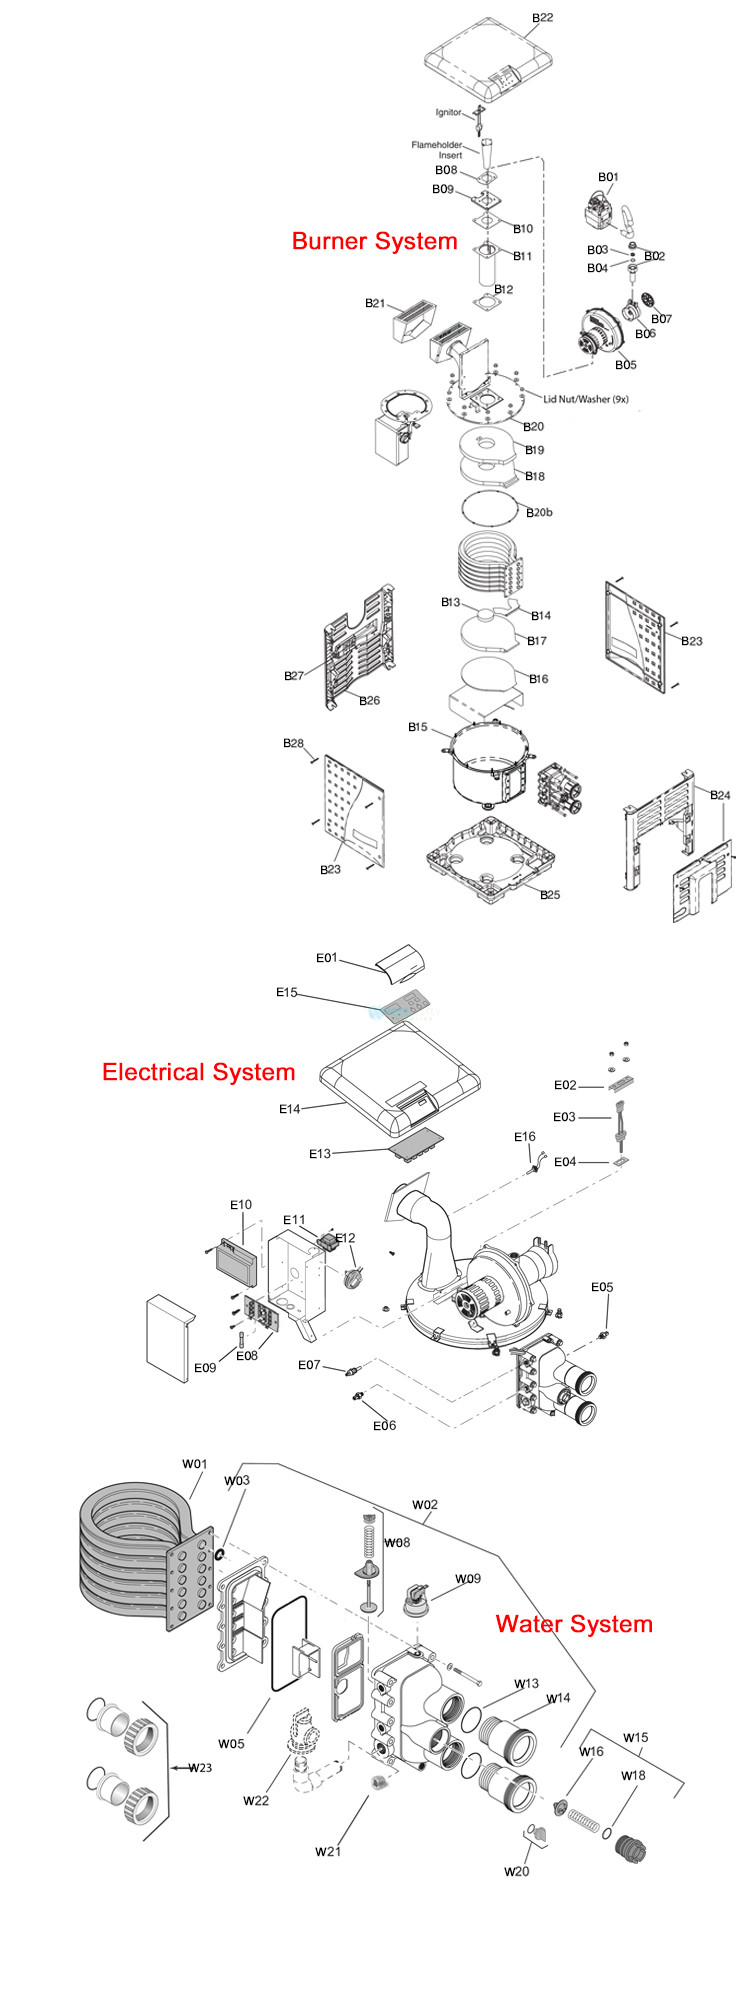 Pentair MasterTemp Low NOx Pool Heater - Electronic Ignition - Propane - 175,000 BTU   460793 Parts Schematic